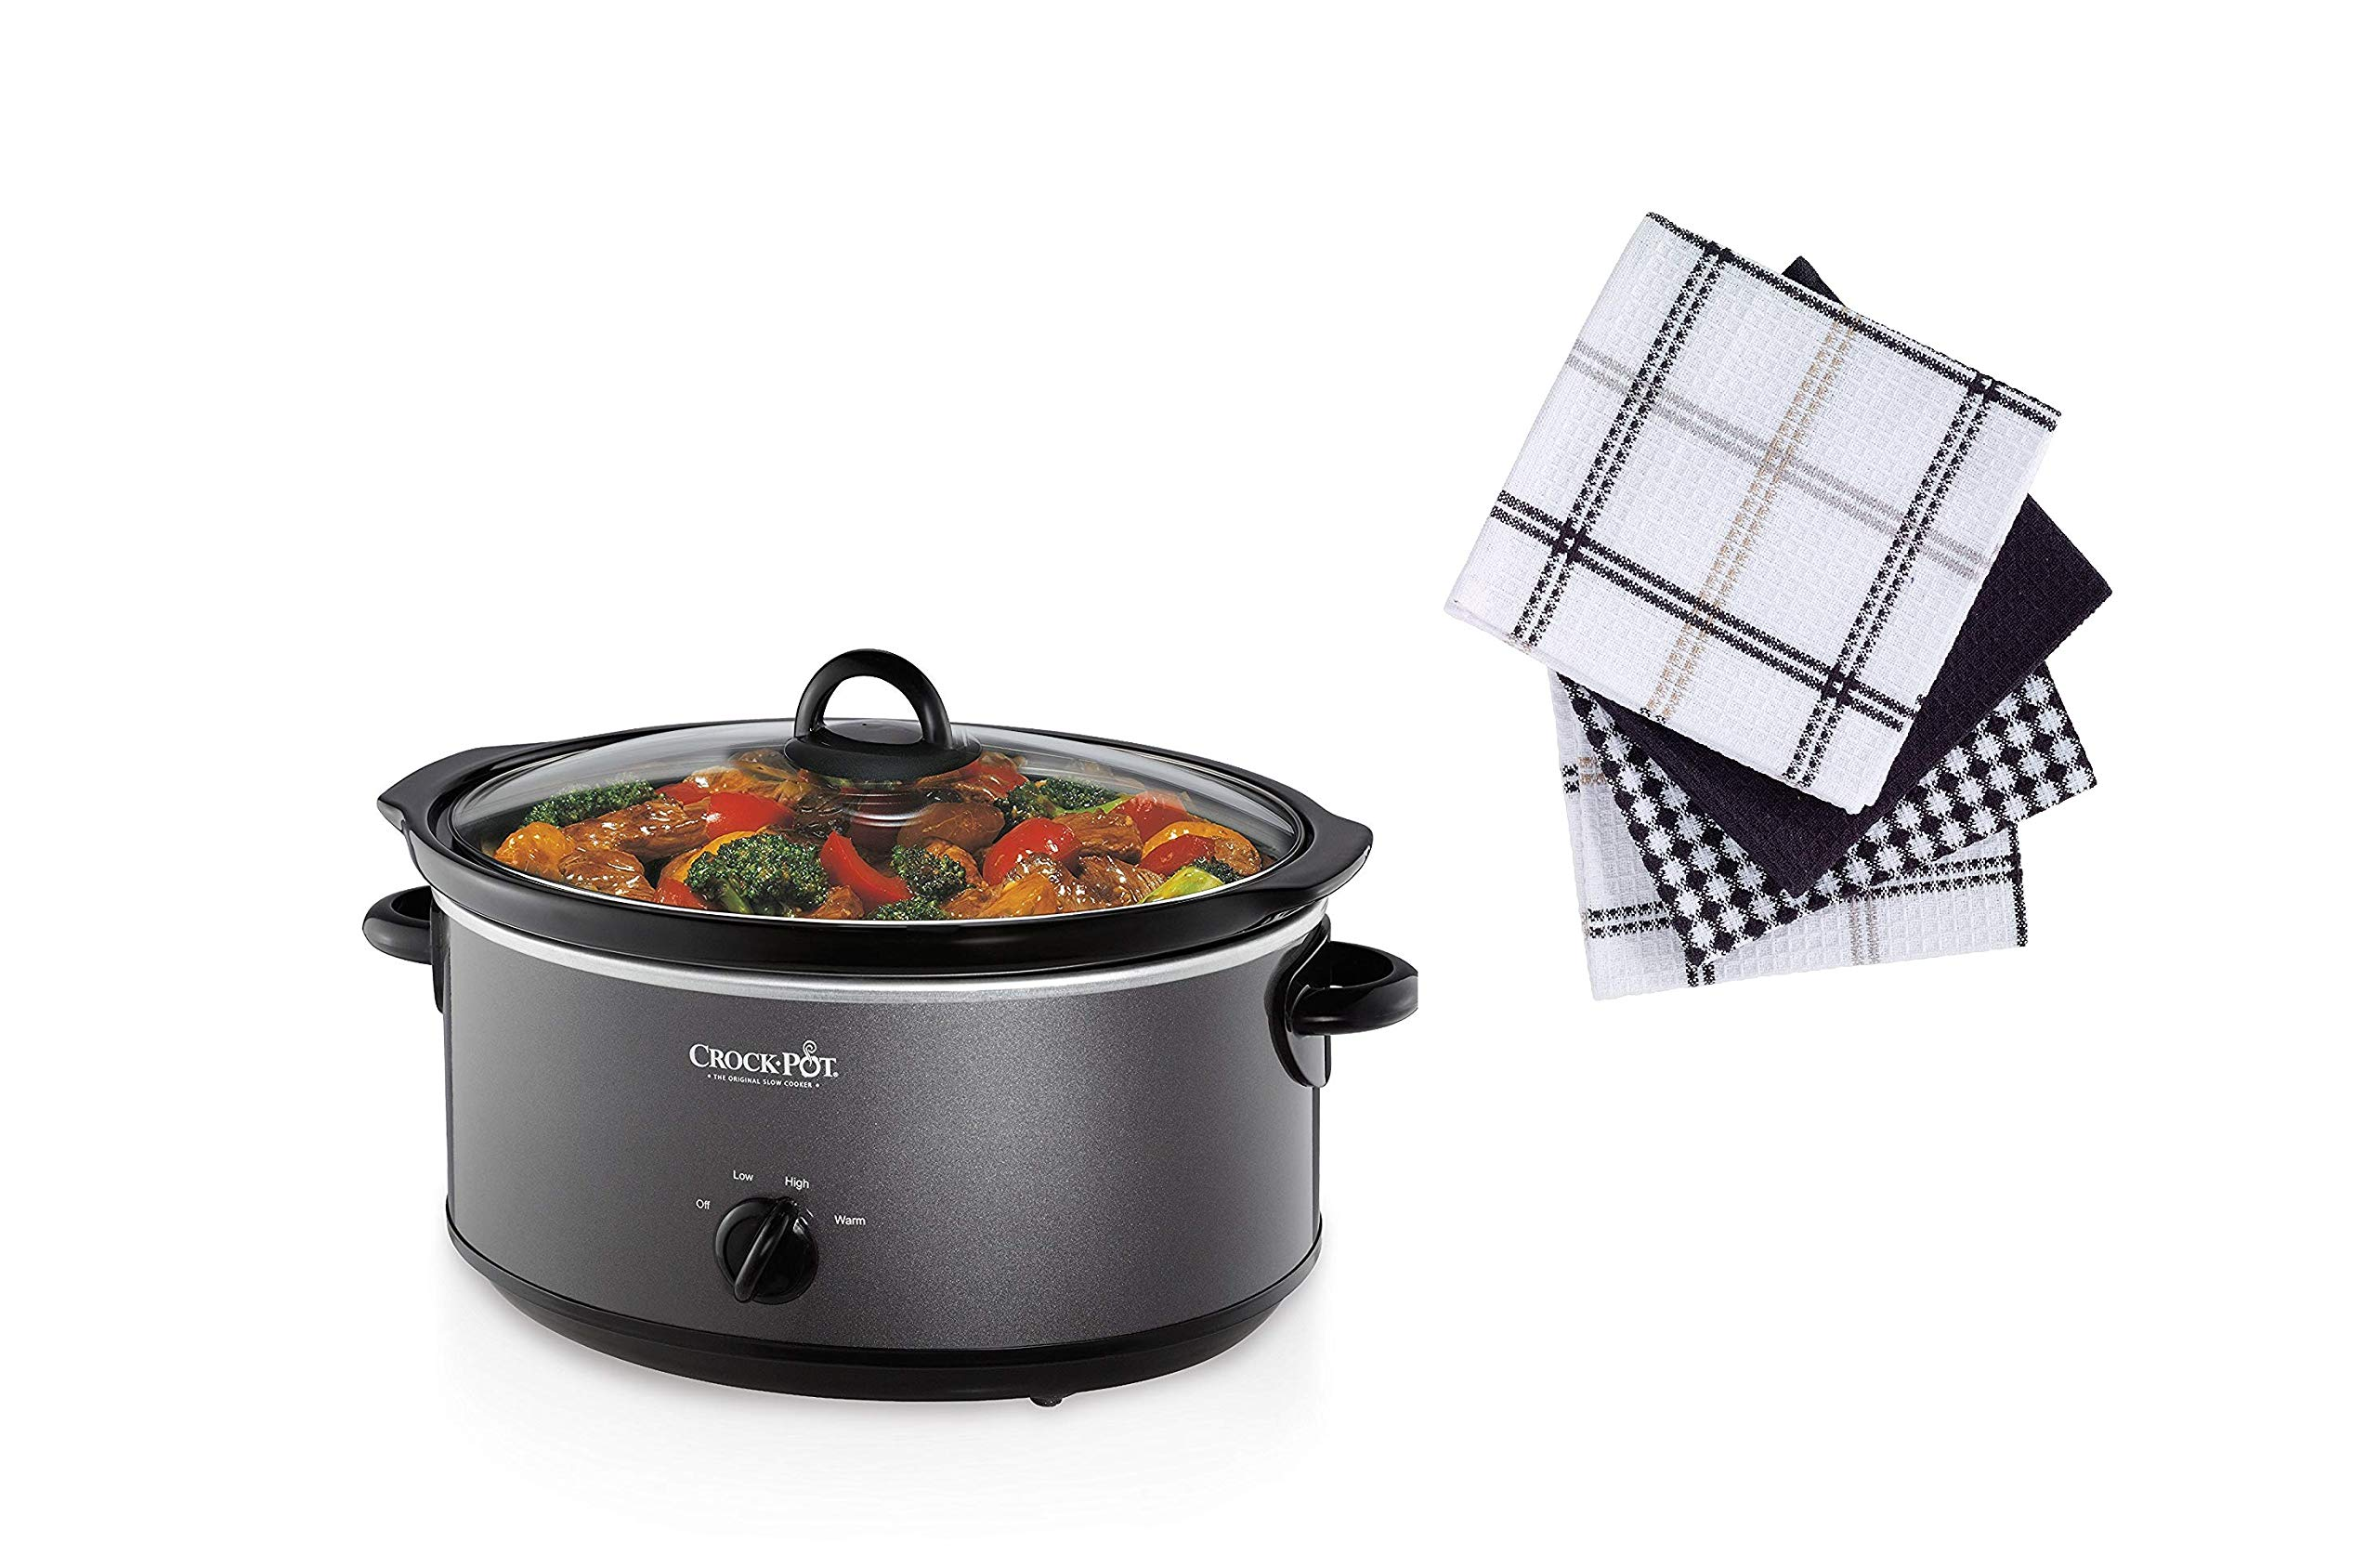 Crockpot SCV700-KC crock pot 7 quarts Charcoal With Towels product image